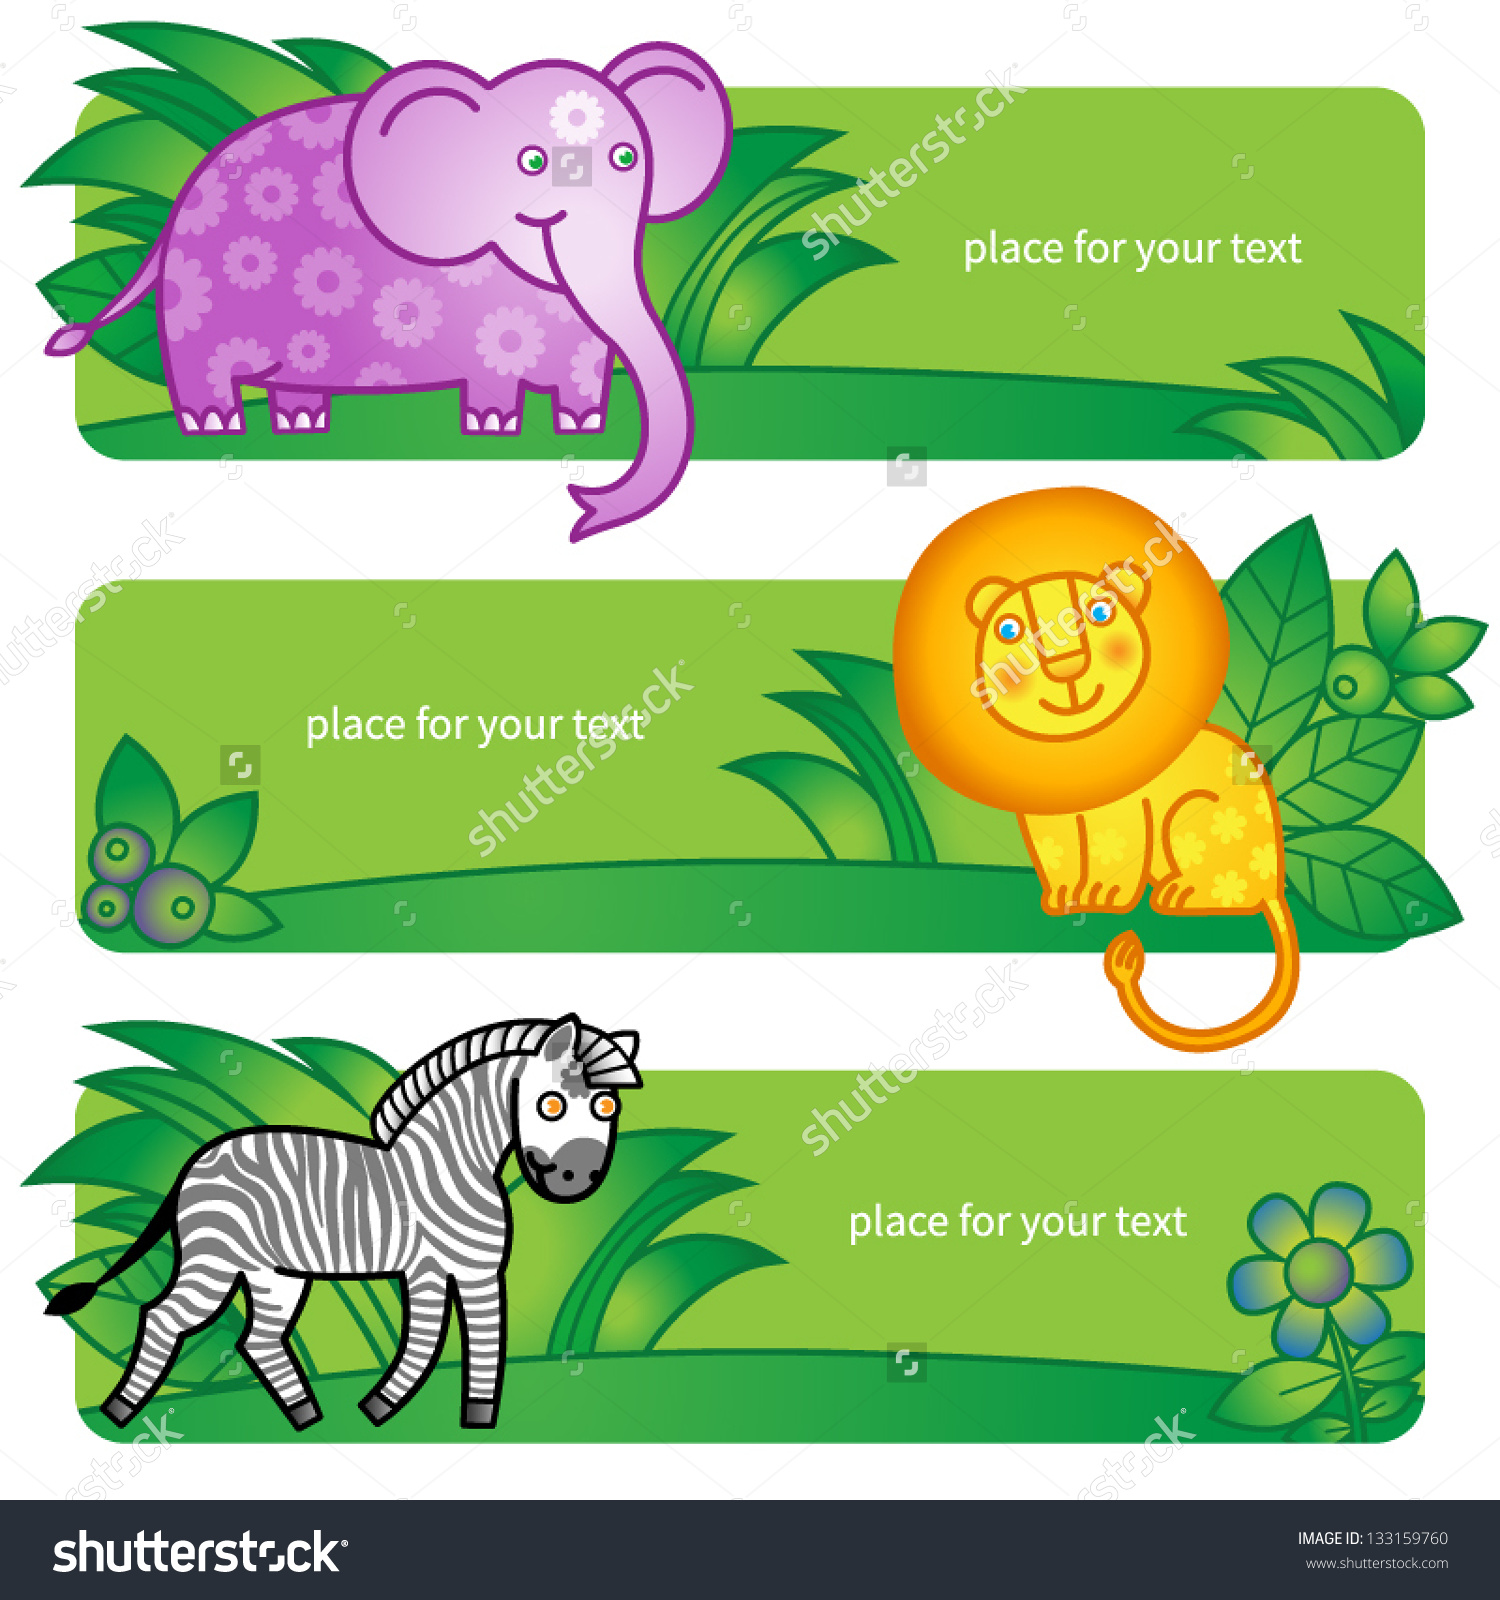 Bright Cards With Cute Animals From Jungle. Place For Your Text.